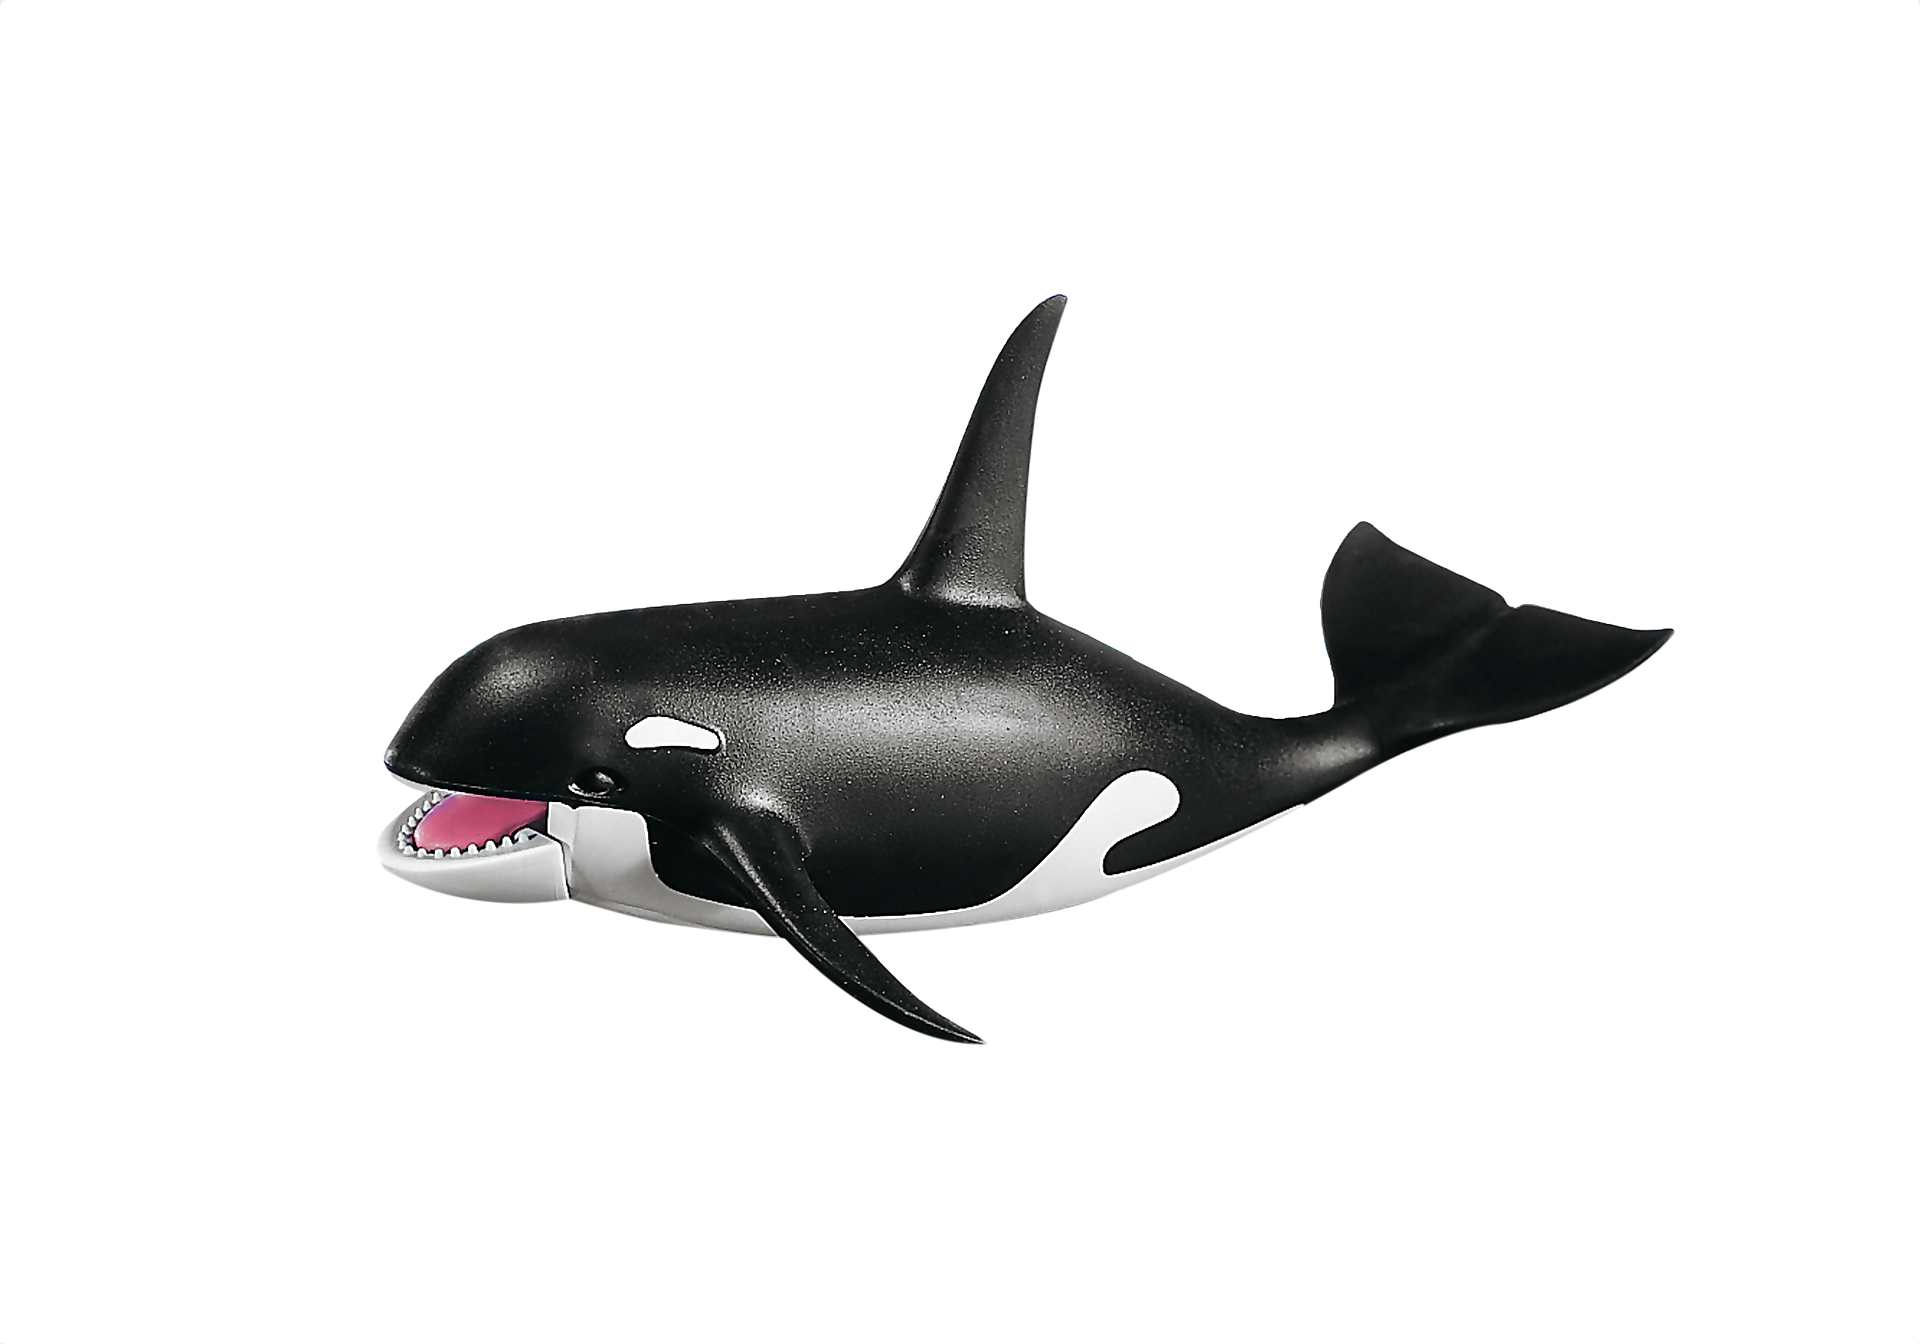 7654 killer whale zoom image1